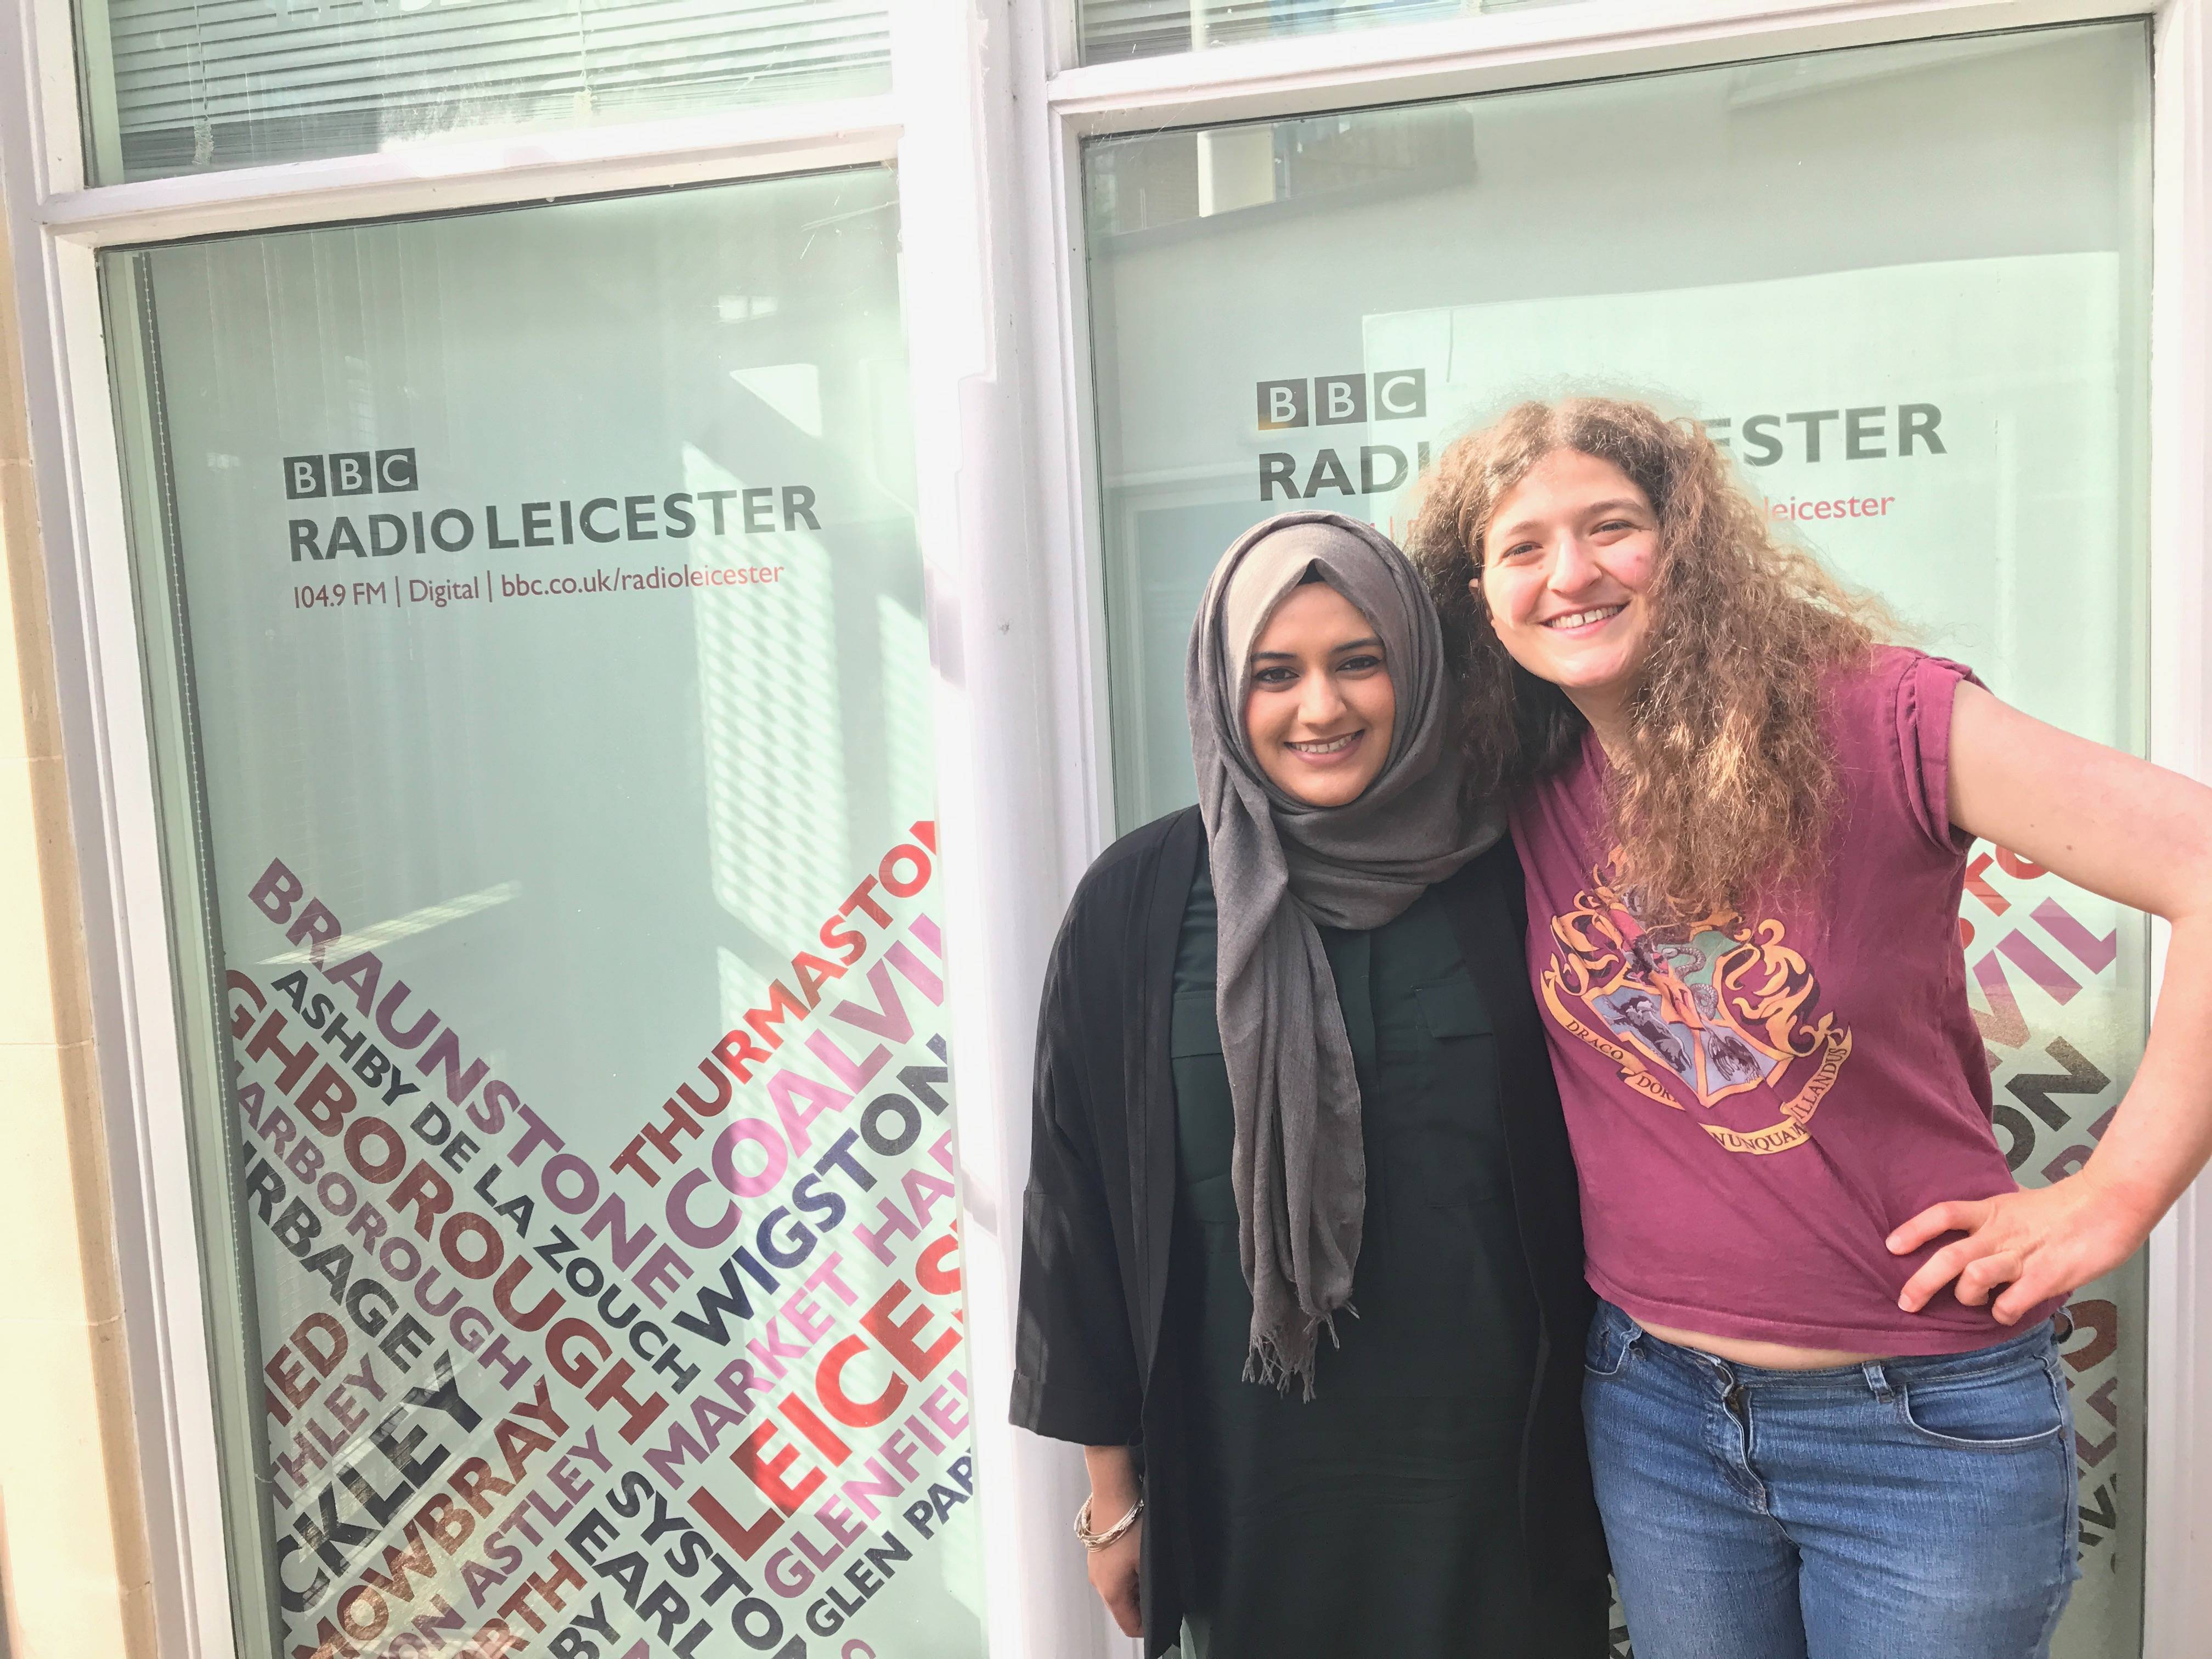 BBC Radio Leicester: Great Get Together